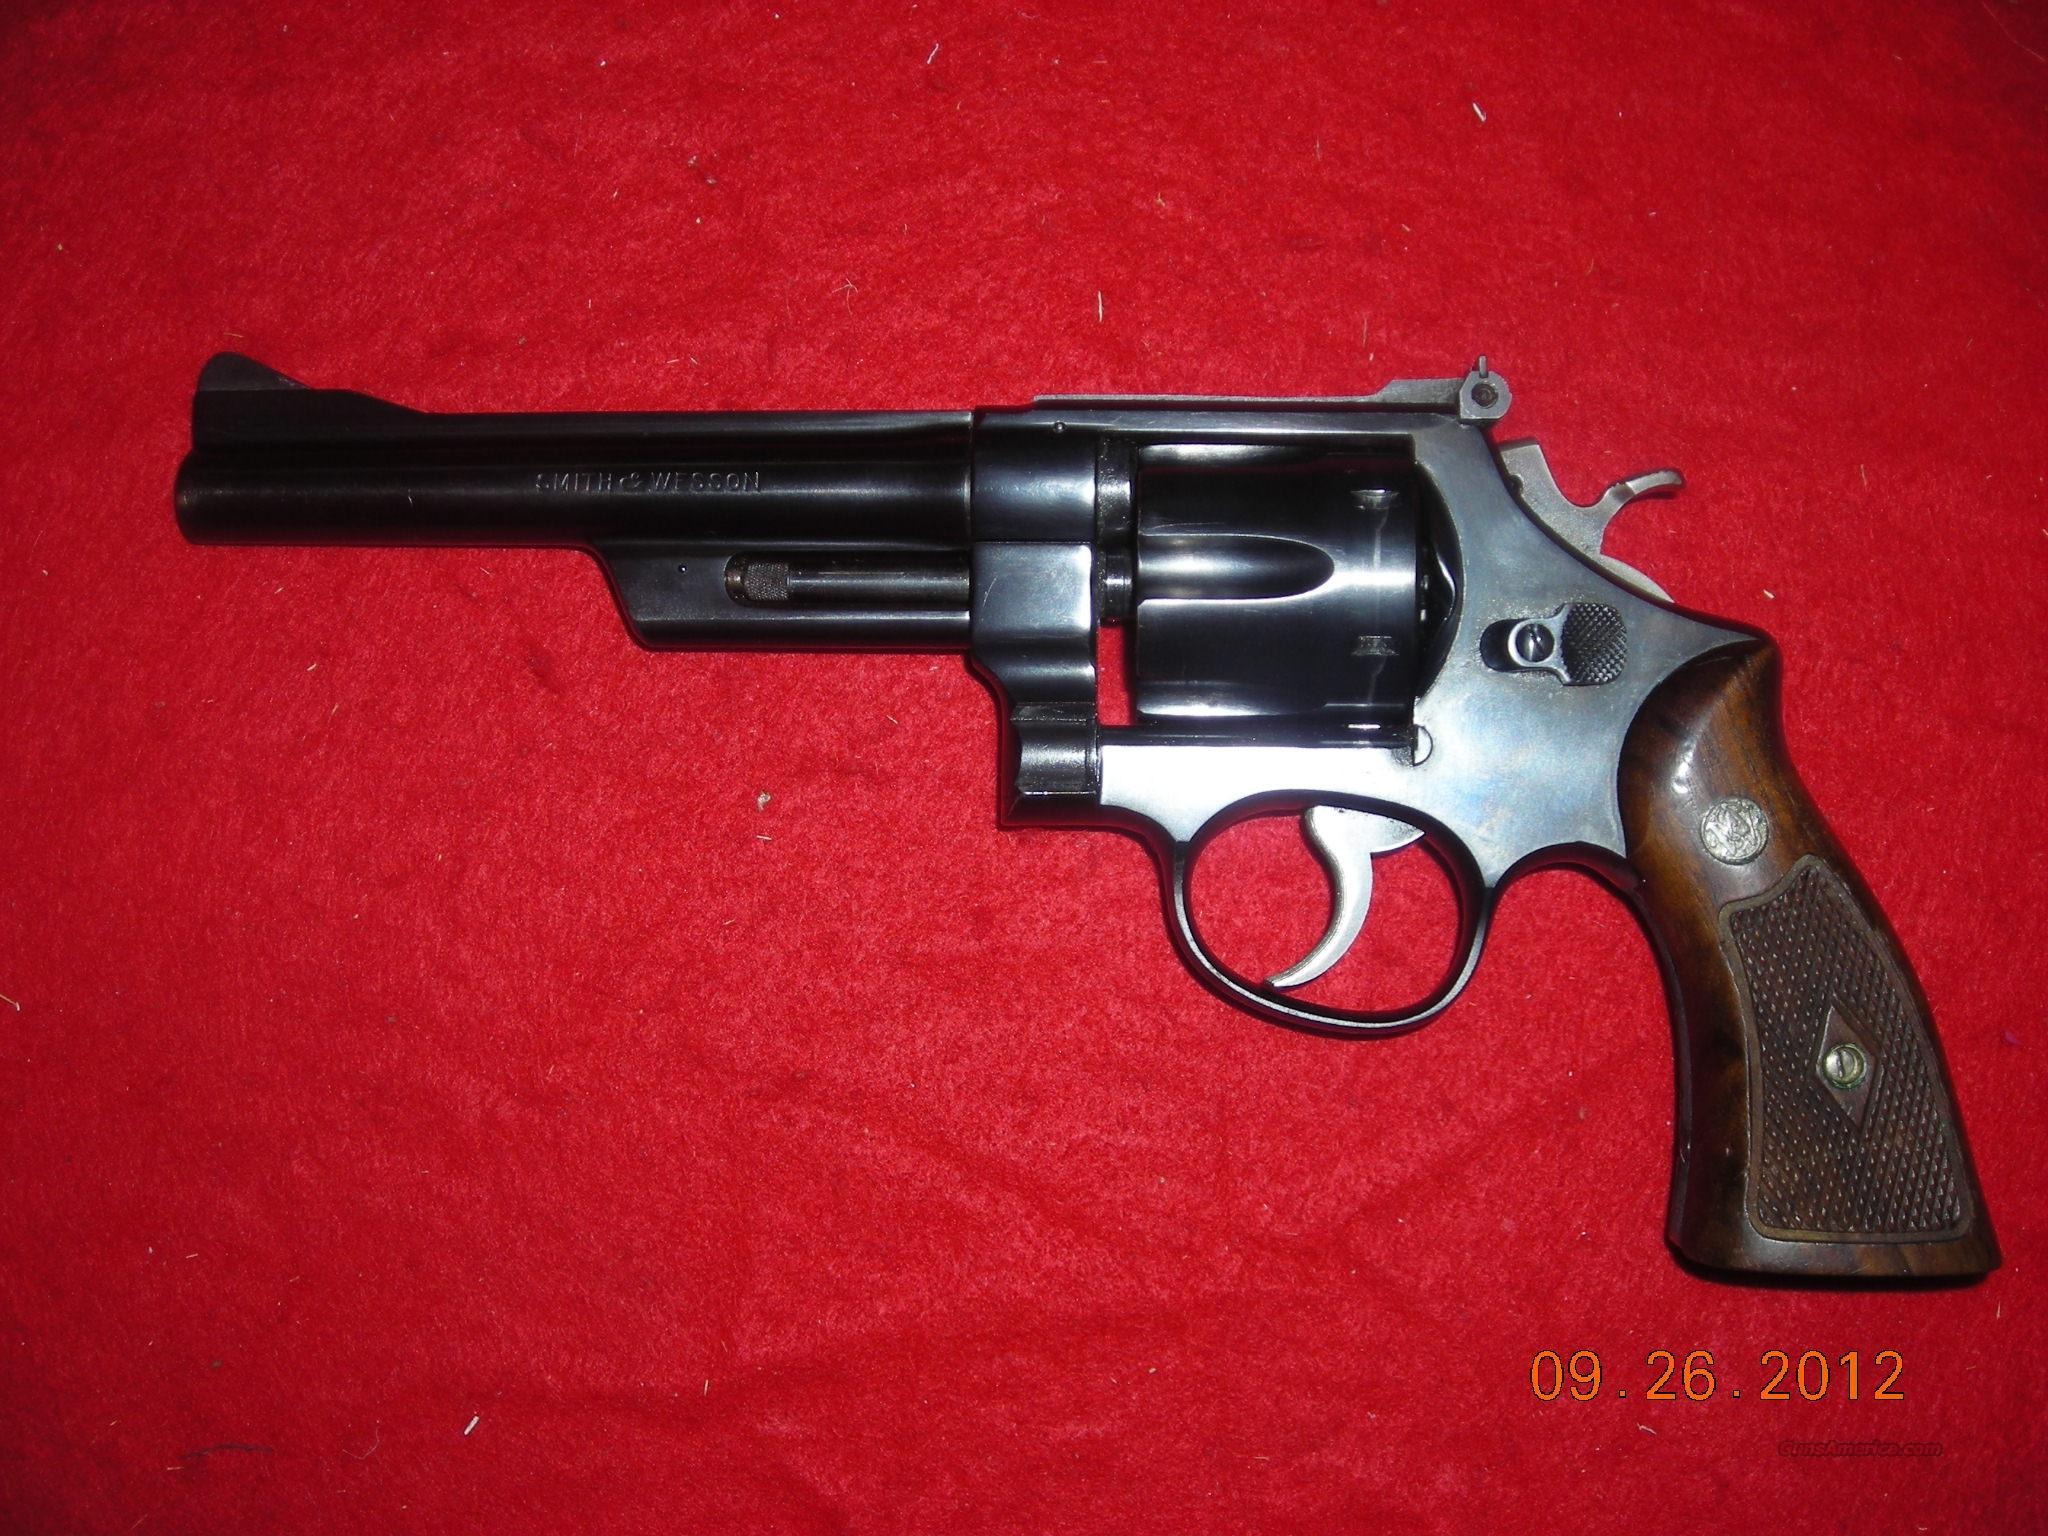 SMITH & WESSON MOD 28  Guns > Pistols > Smith & Wesson Revolvers > Full Frame Revolver